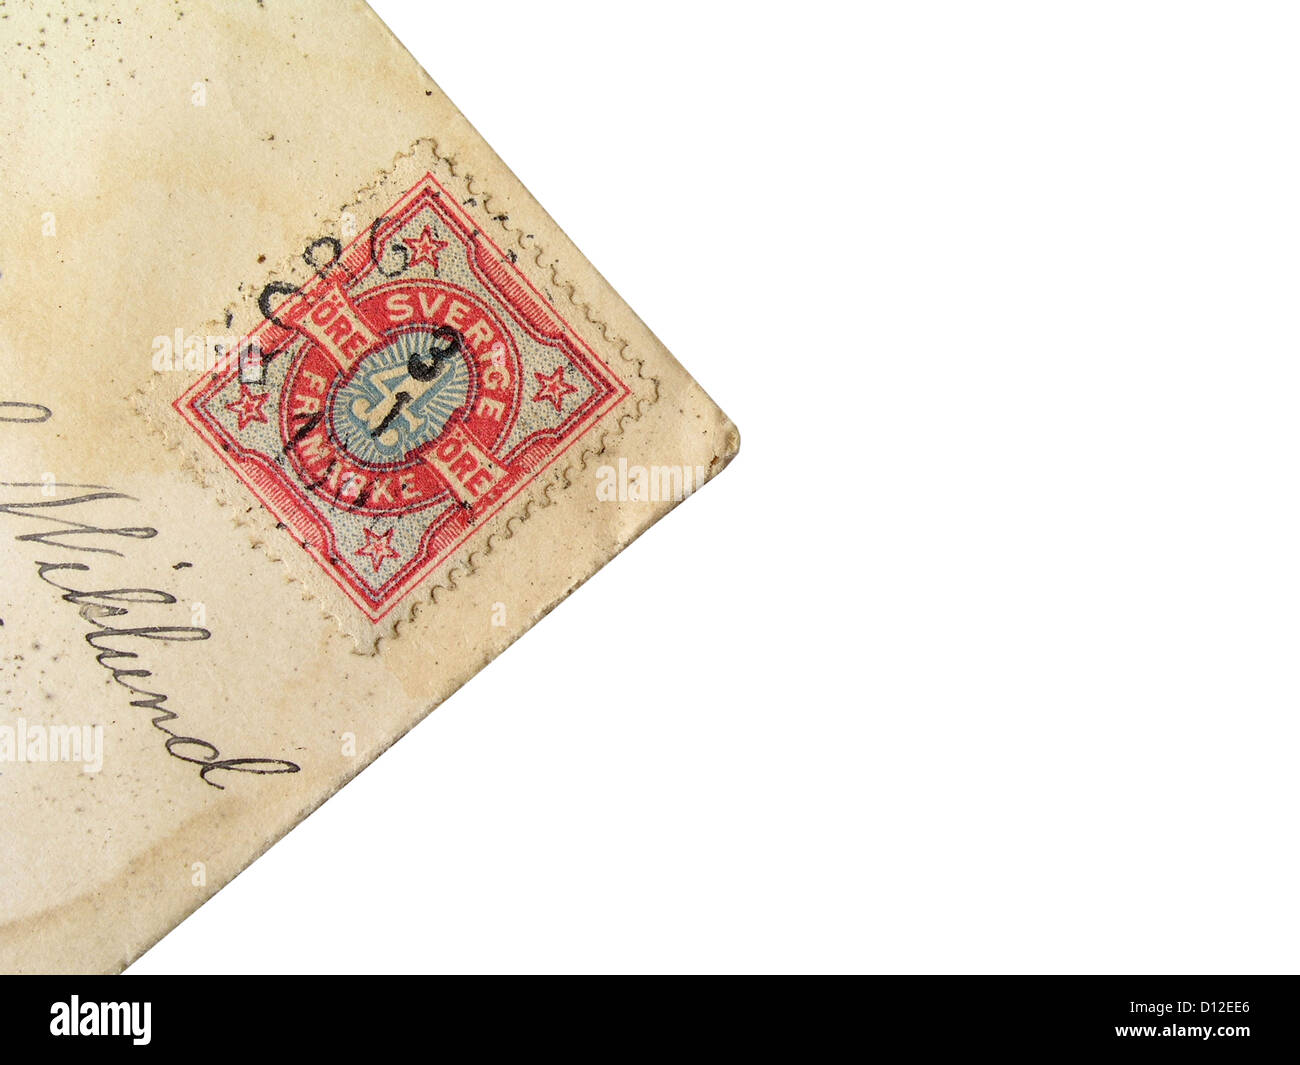 Old stamp of Sweden postage isolated on white - Stock Image